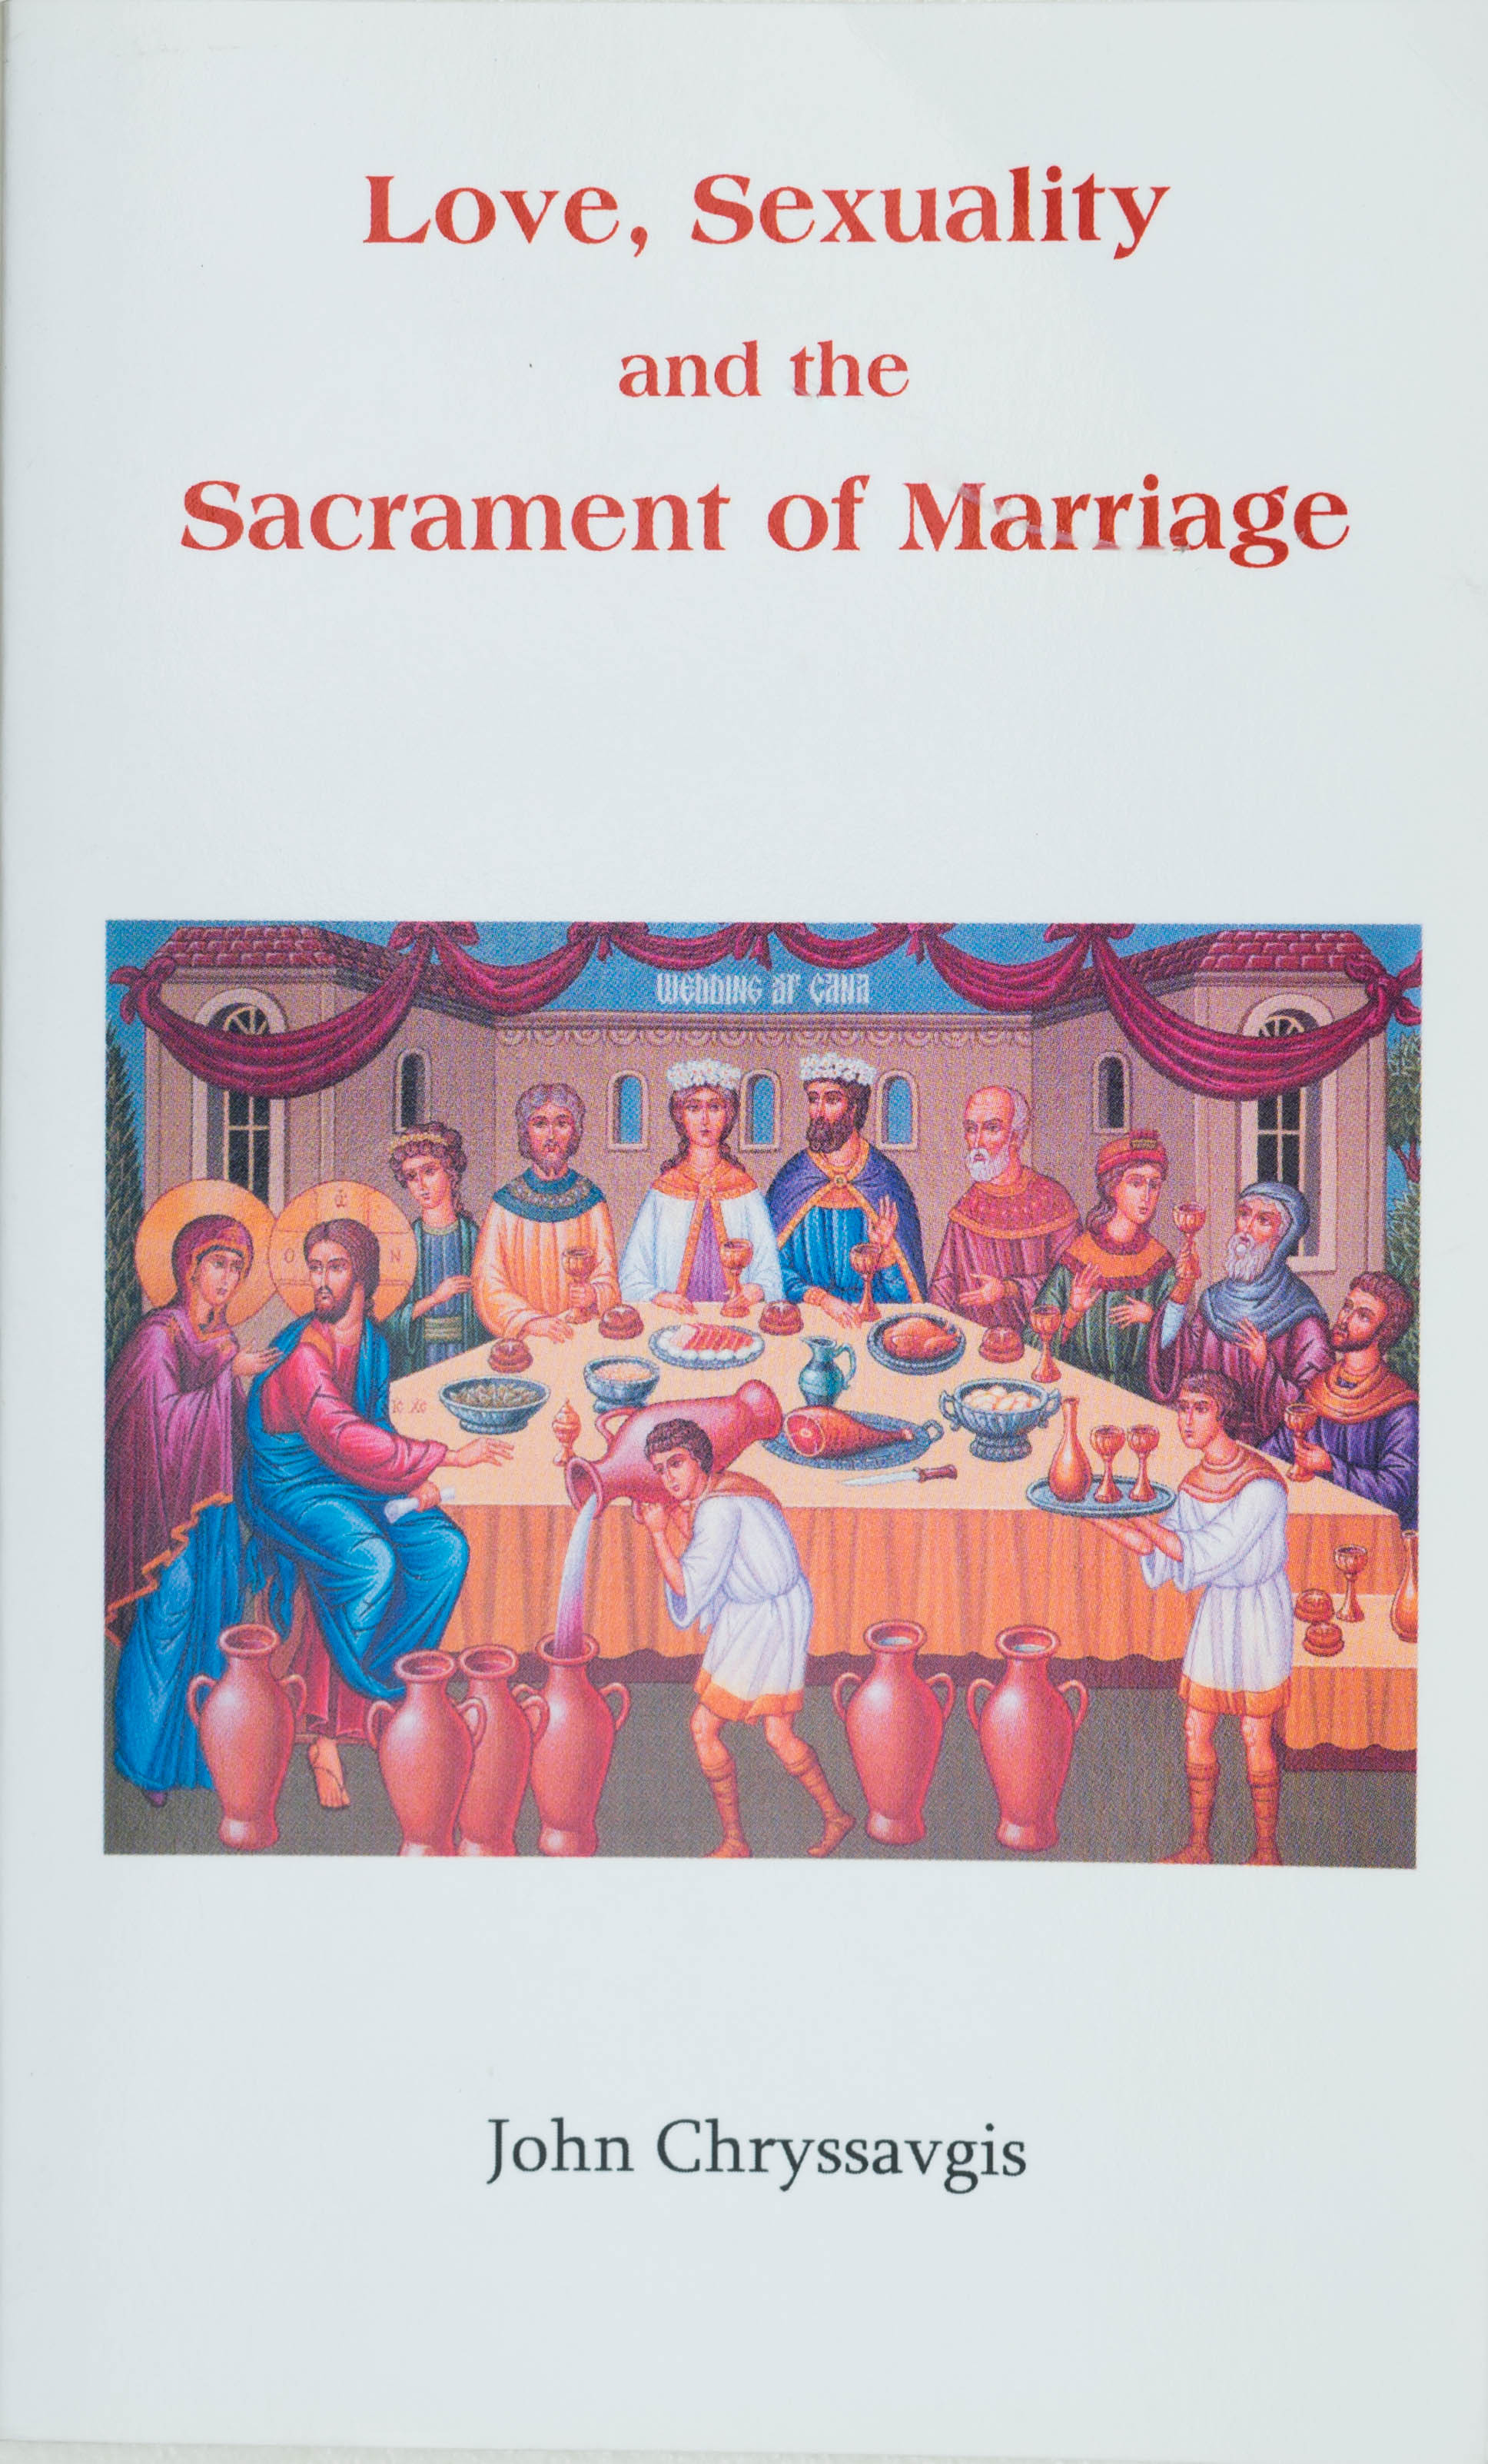 Love, Sexuality and the Sacrament of Marriage